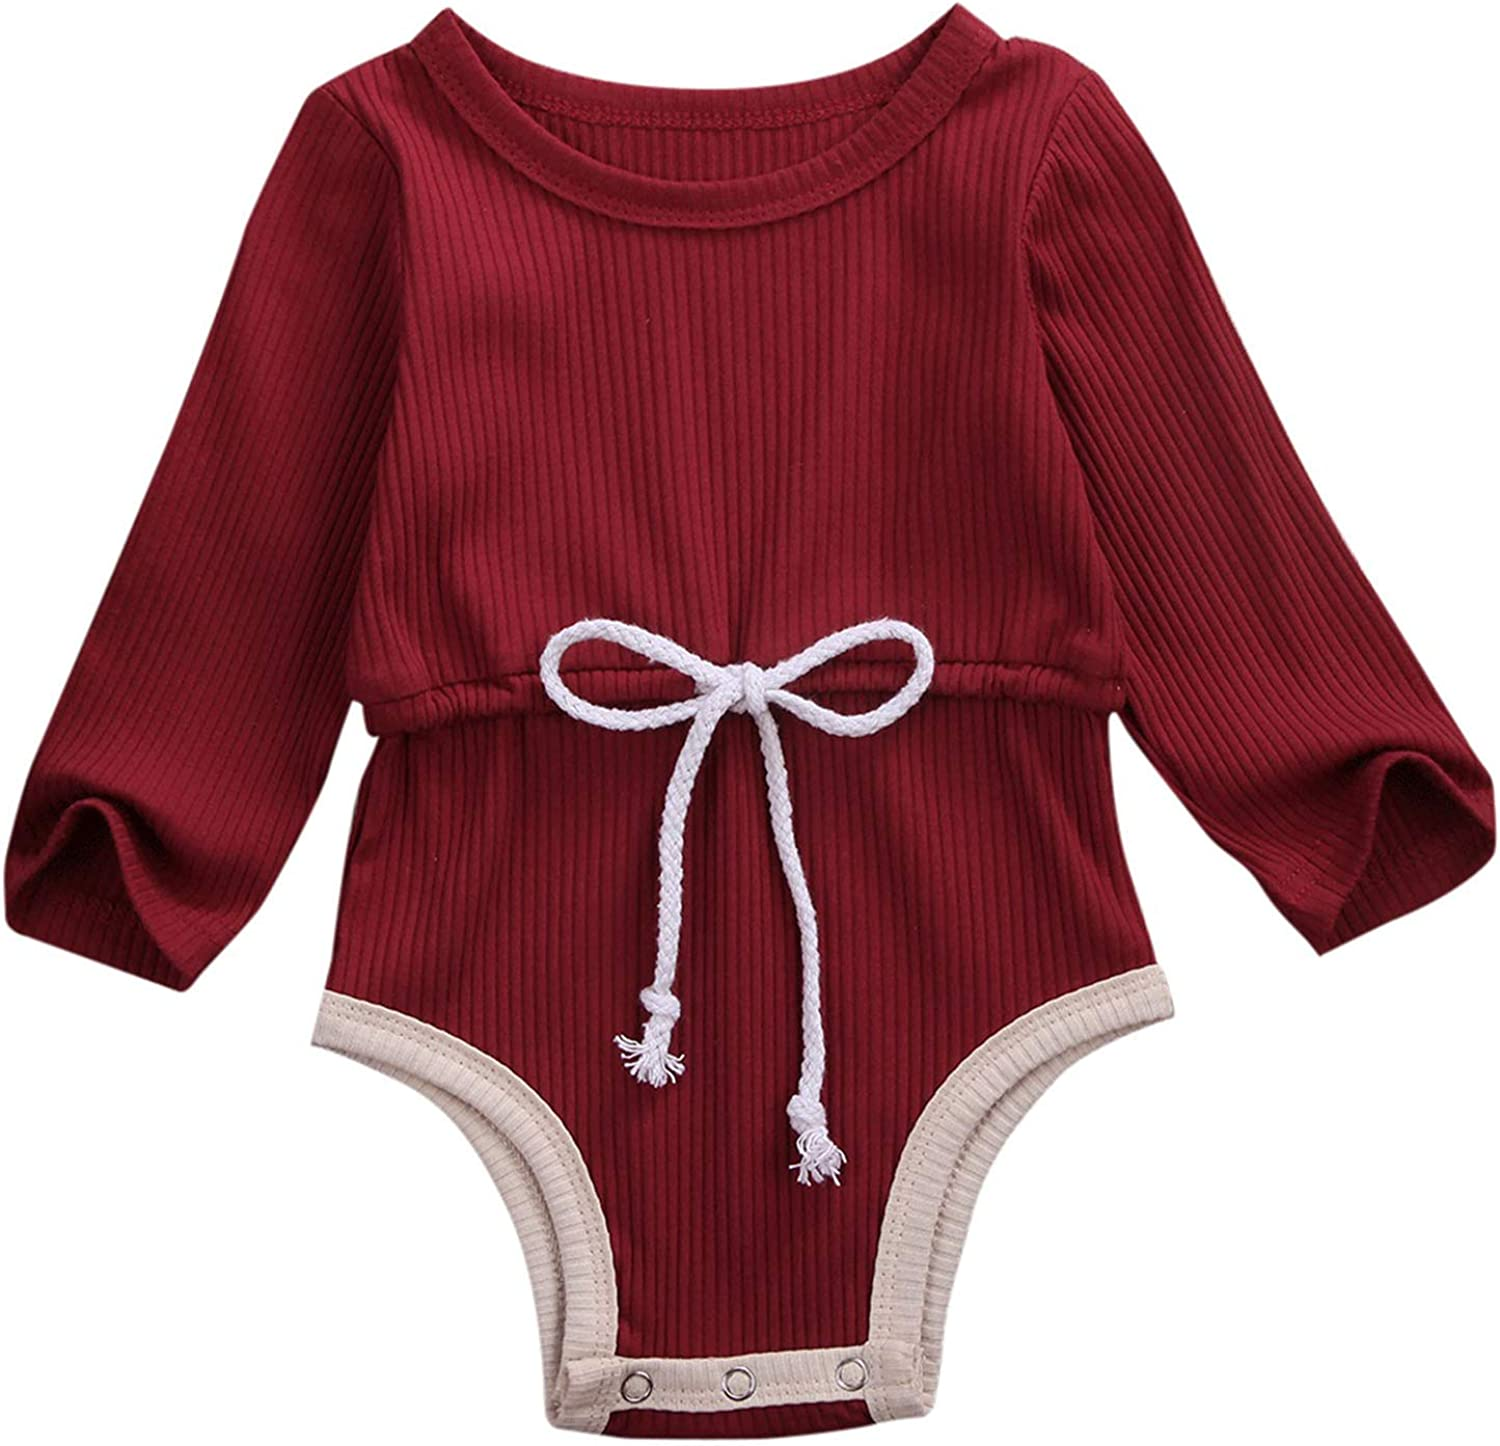 WonderBabe Newborn Infant Romper Toddler Girl One-Piece Jumpsuit Solid Color Long-Sleeve Ruffle Onesie Baby Girls Bodysuit Outfit Clothes with Headband